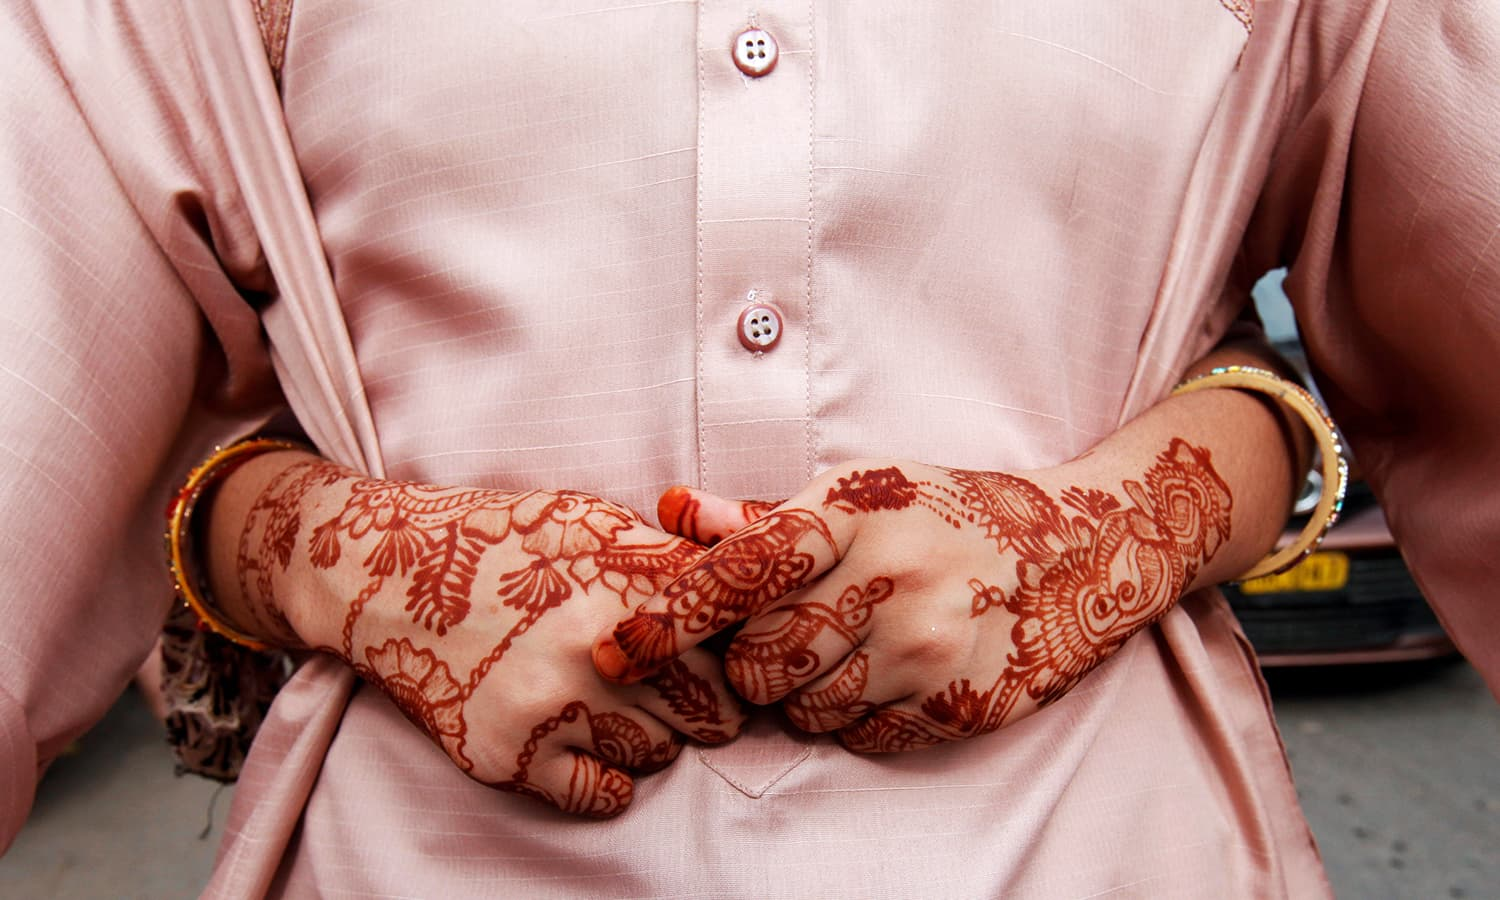 The hands of a girl, adorned with henna patterns, as she puts her arms around her father while traveling on bike during Eid in Karachi. ─ Reuters